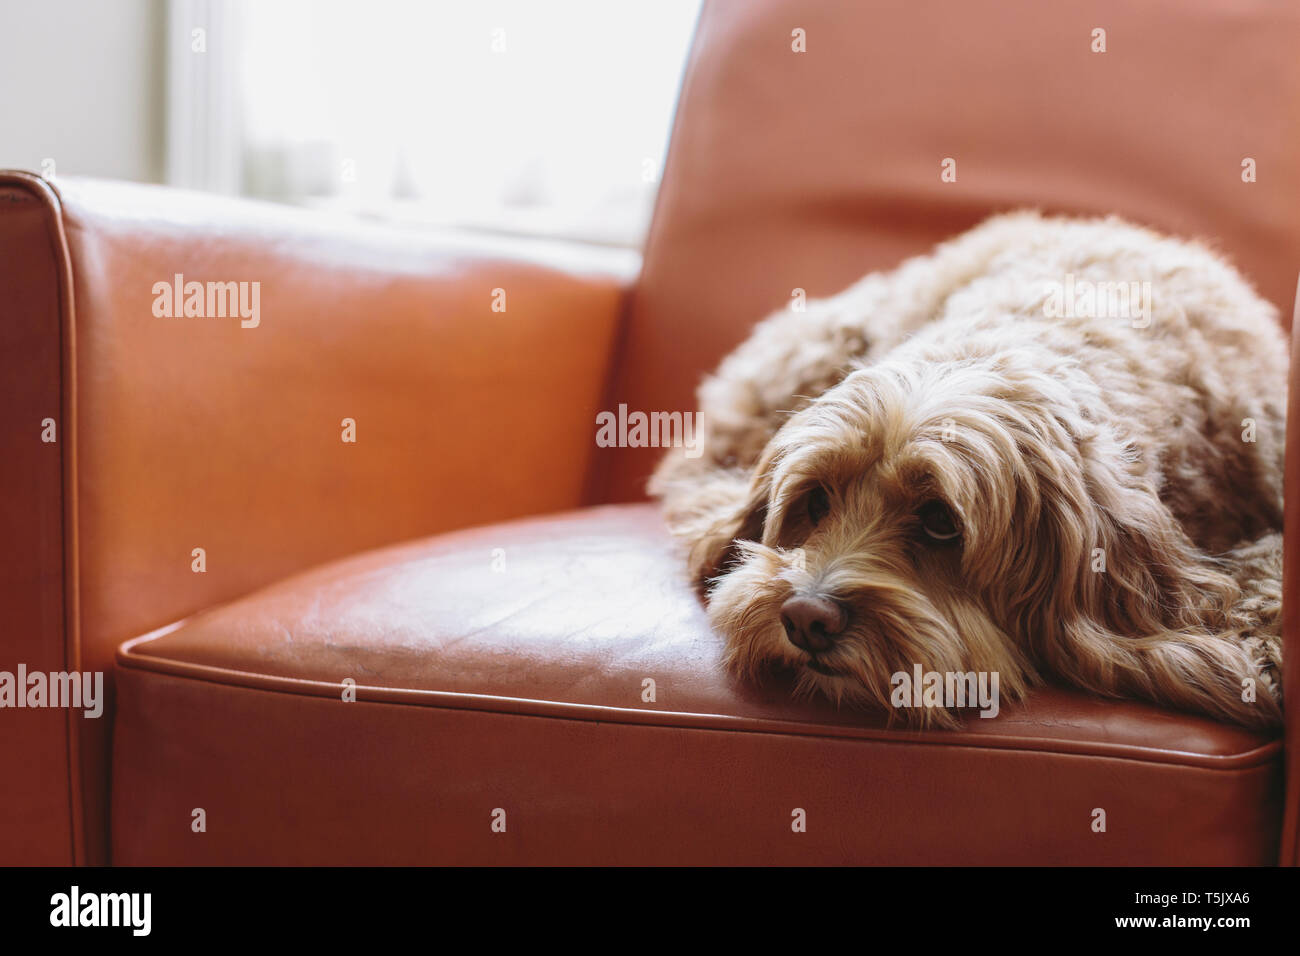 A cockapoo mixed breed dog, a cocker spaniel poodle cross, a family pet with brown curly coat lying on a brown leather chair. - Stock Image